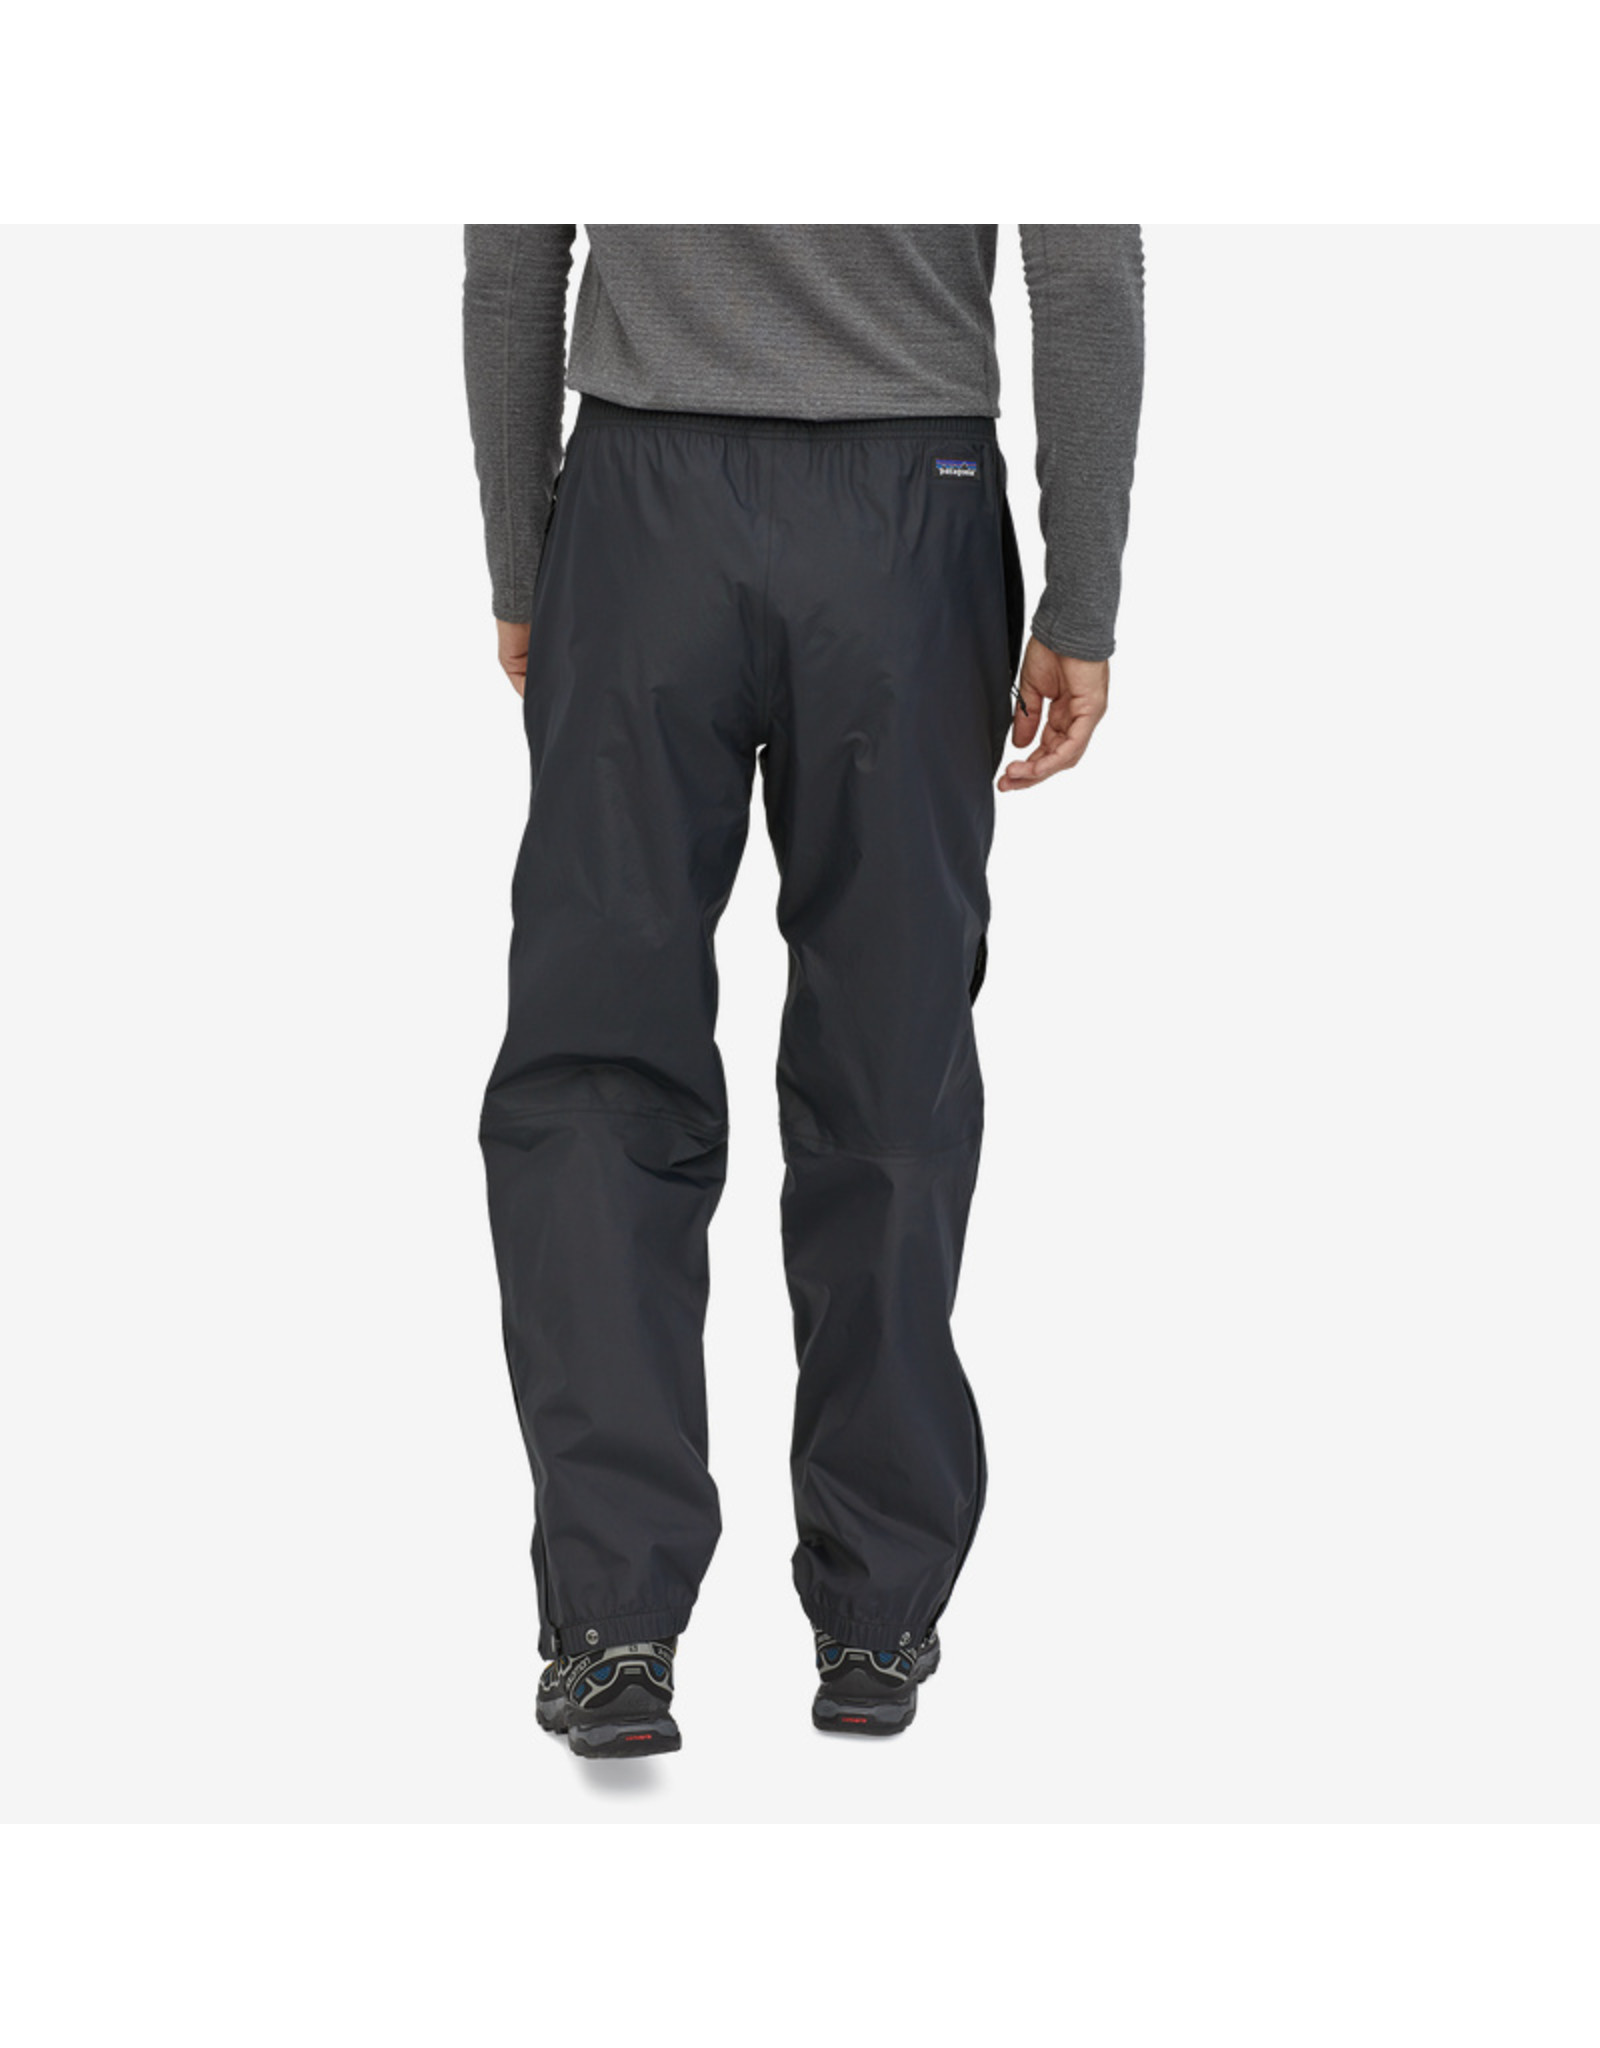 Patagonia Patagonia - Men's Torrentshell 3L Rain Pants - Regular